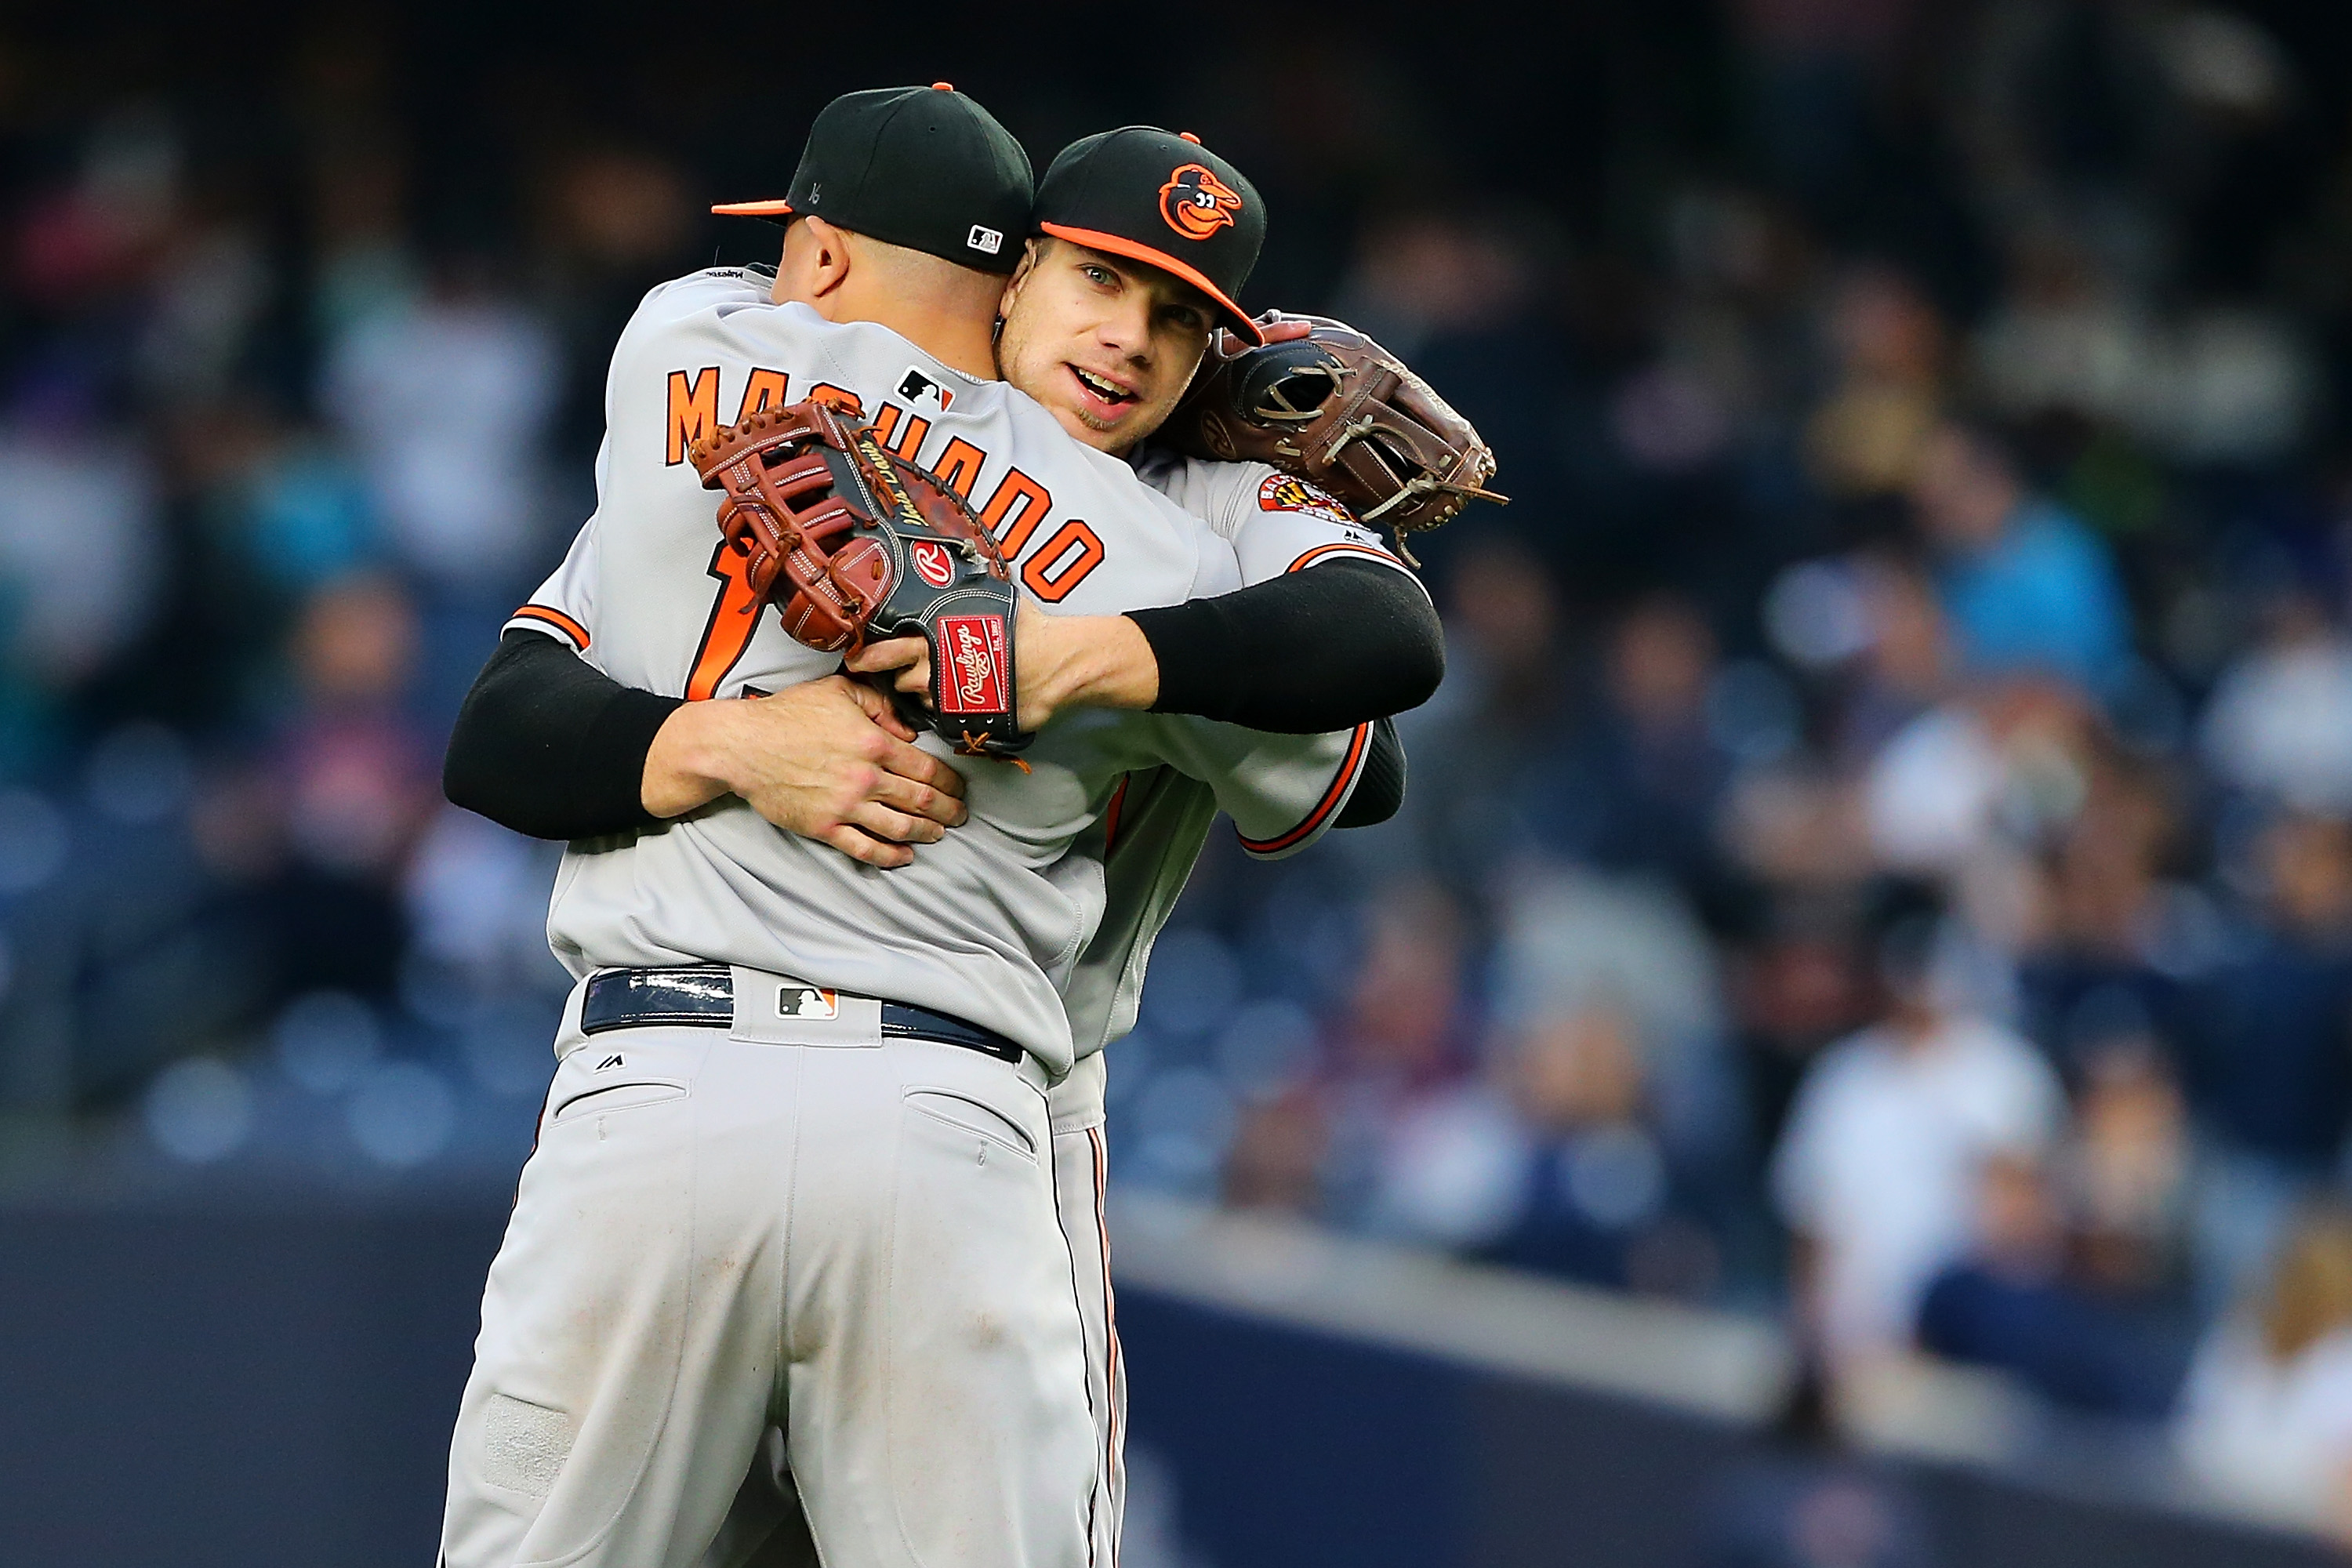 Manny Machado and Chris Davis hug one another after the Orioles clinch a postseason berth.